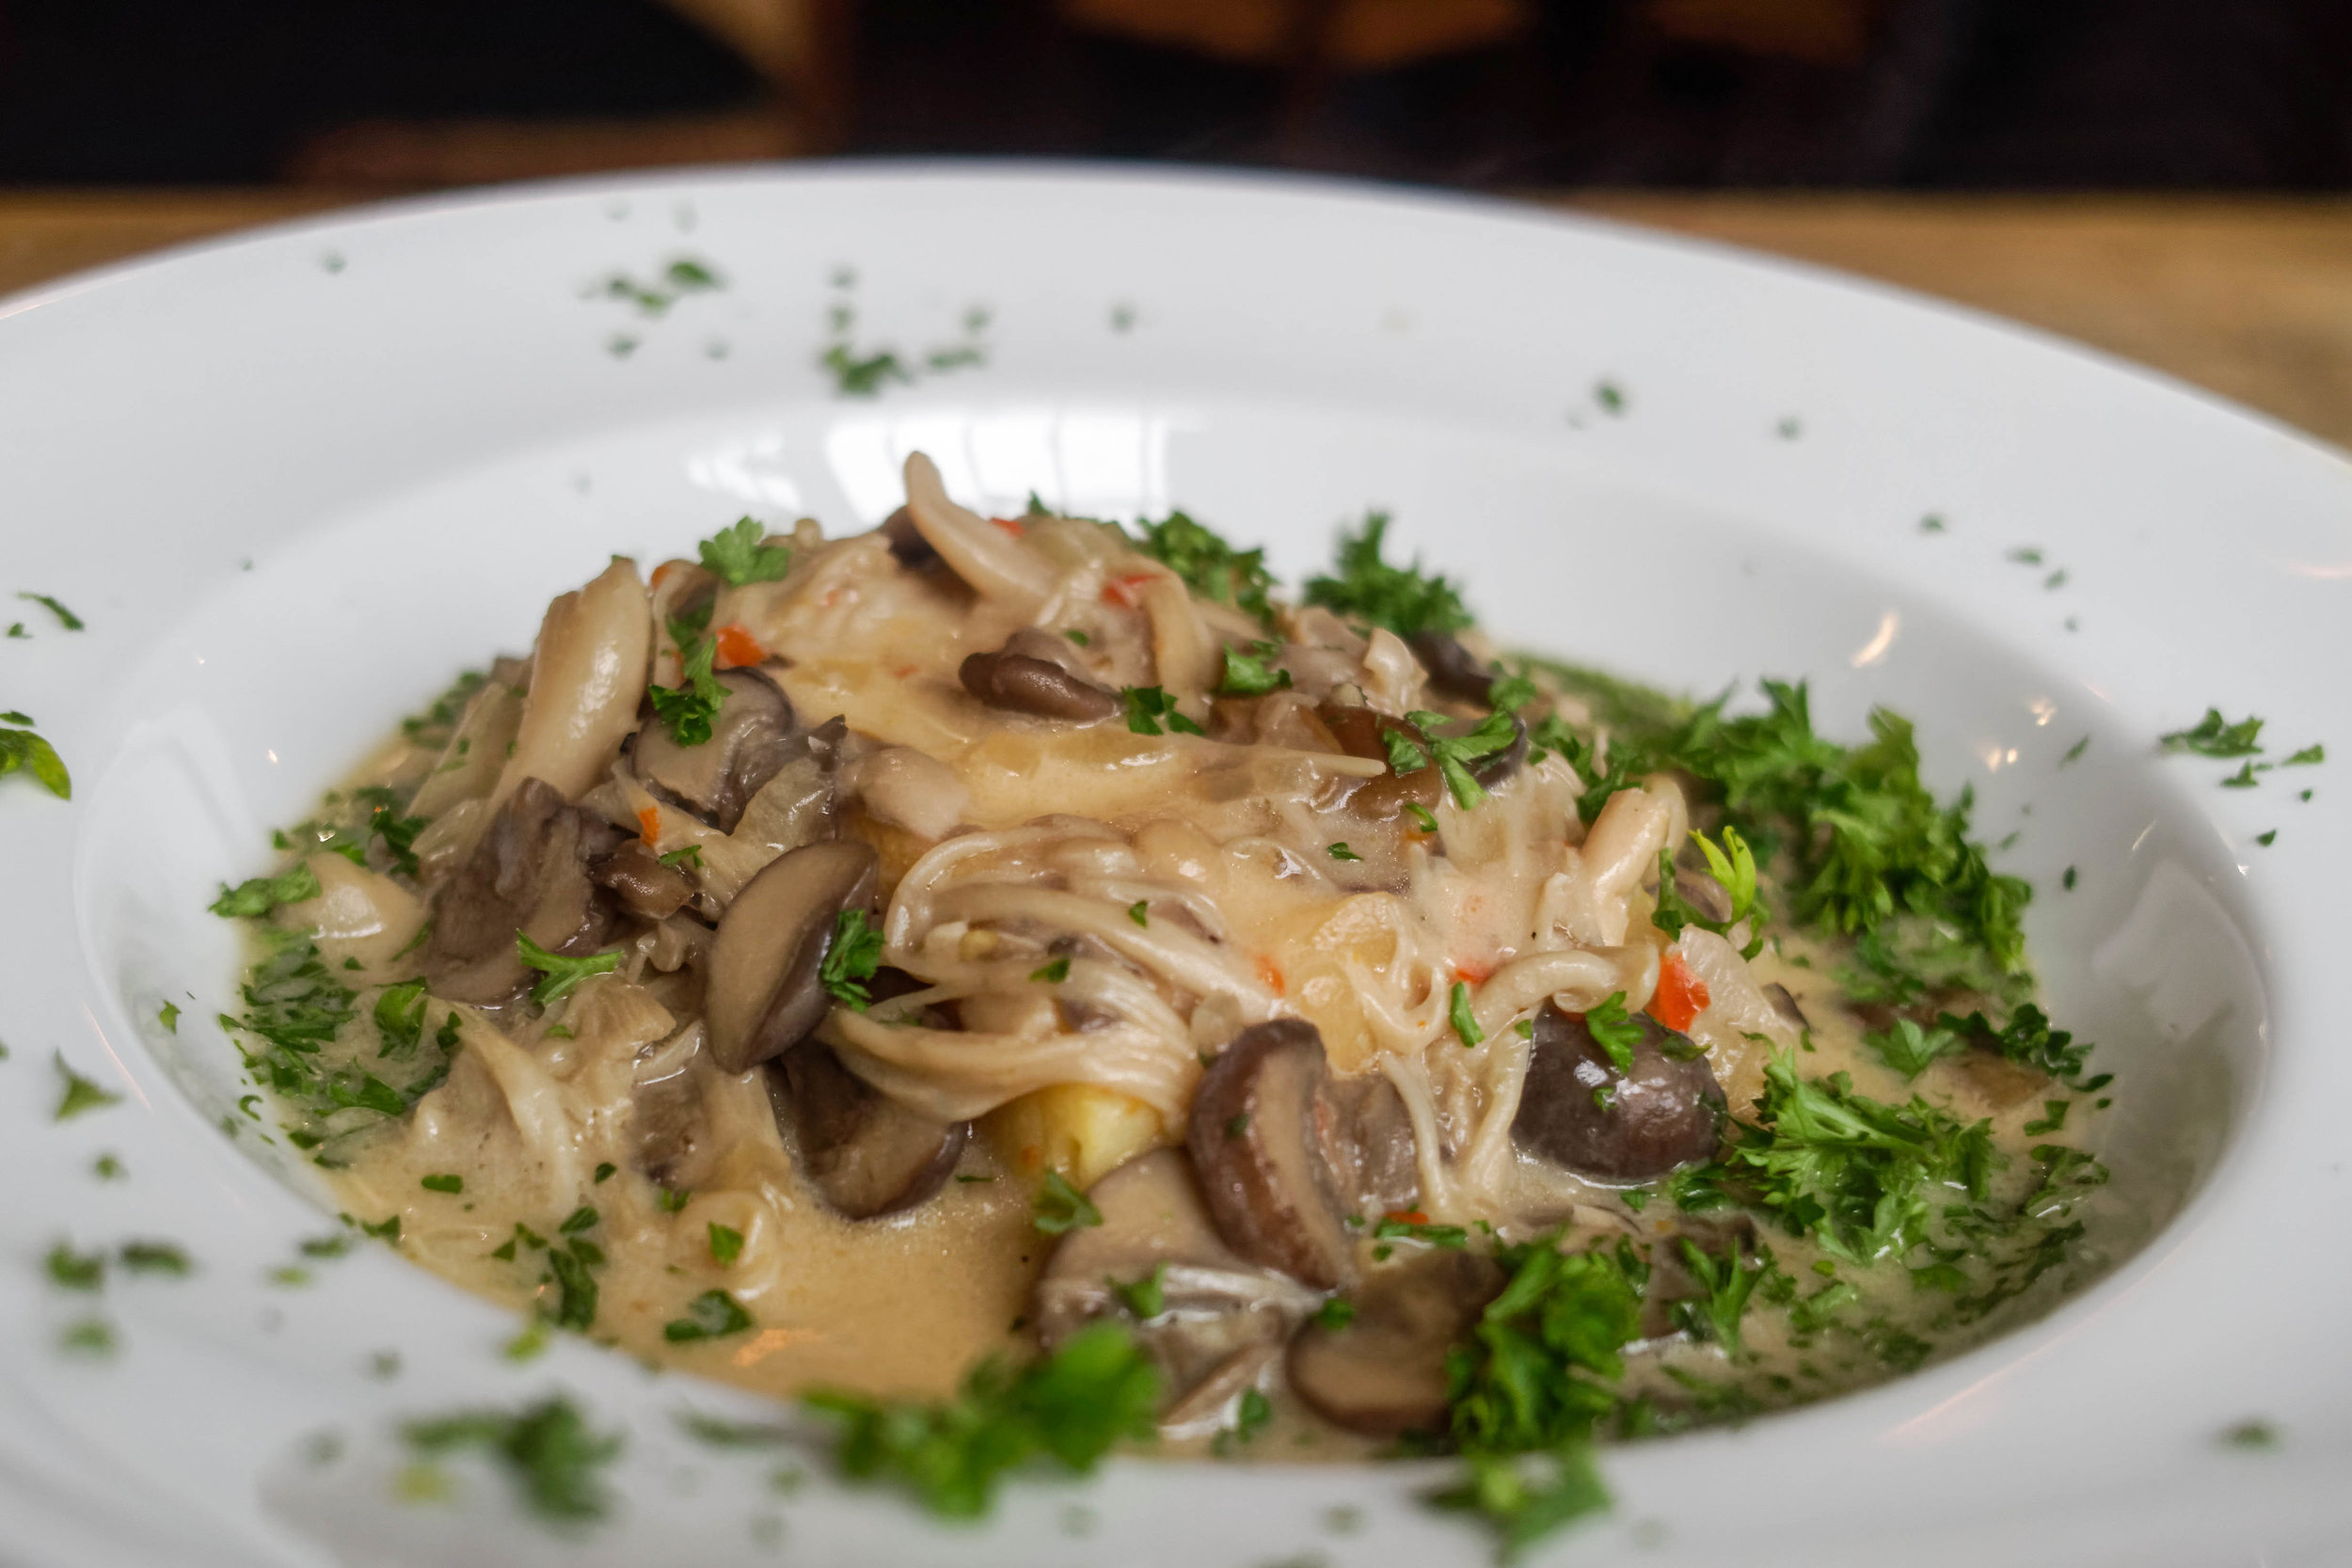 Wild mushroom and polenta, with a pop of spice from the chili.